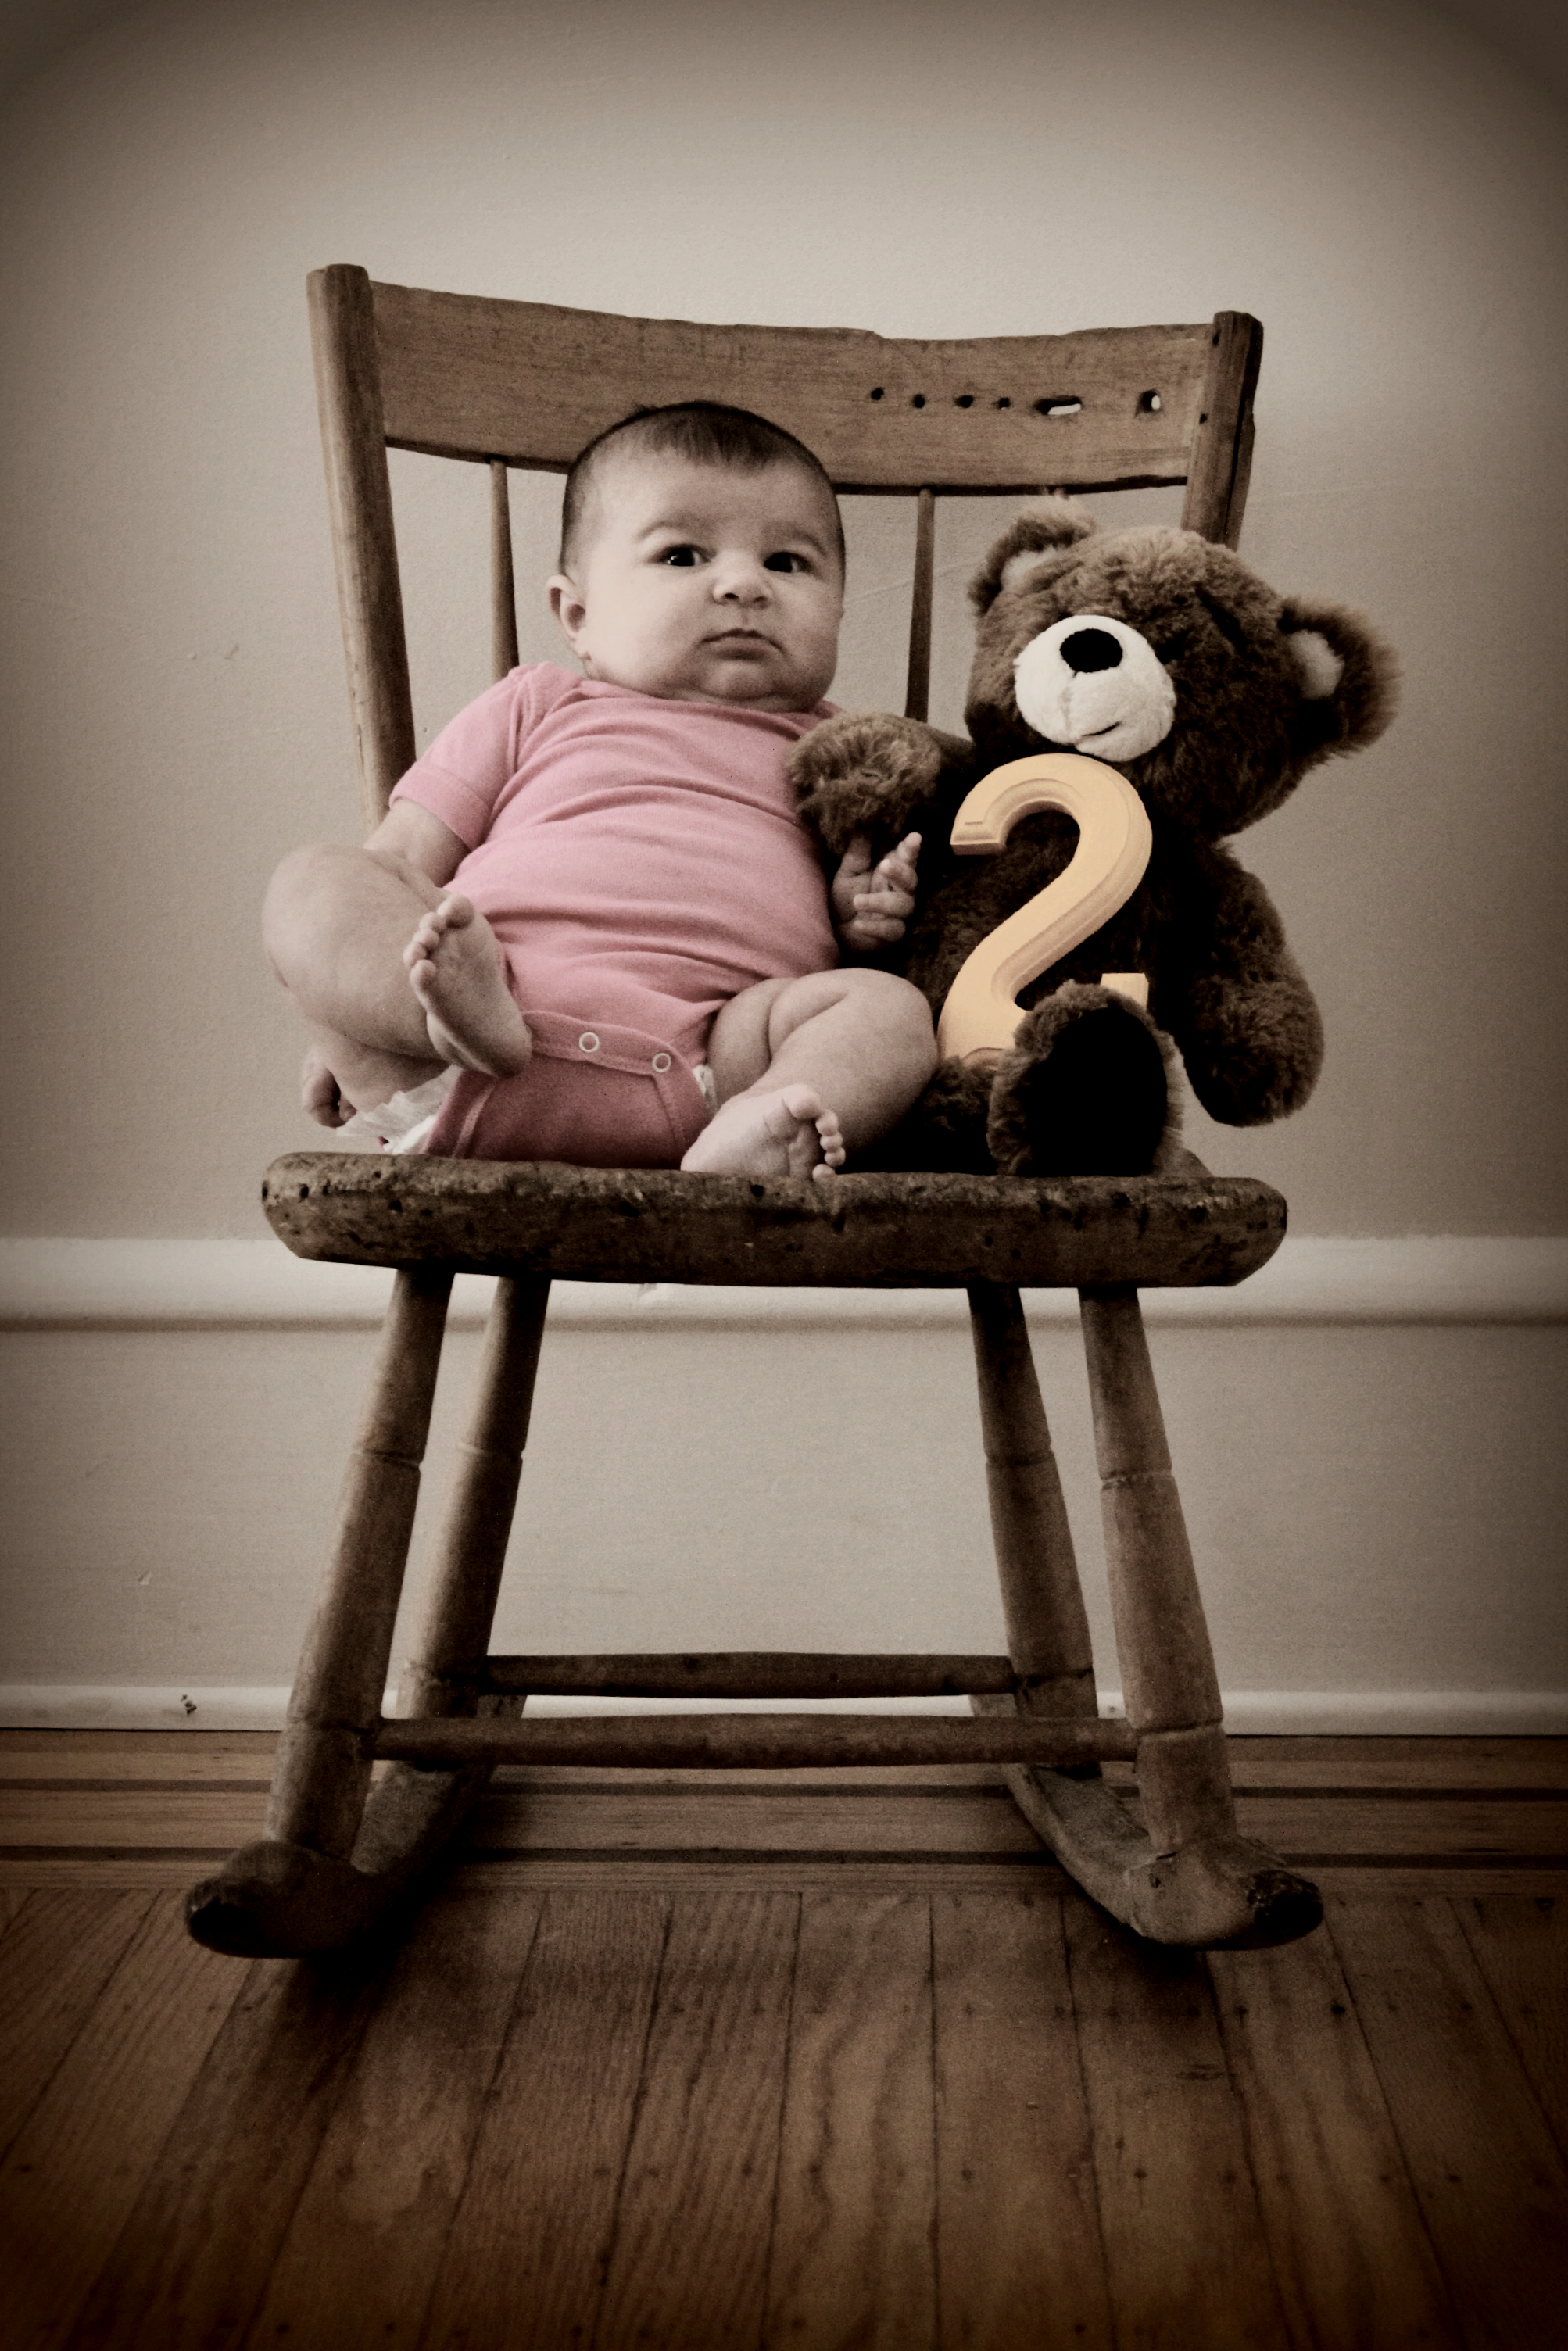 Baby Carmendy: Two Months Old and Too Cute